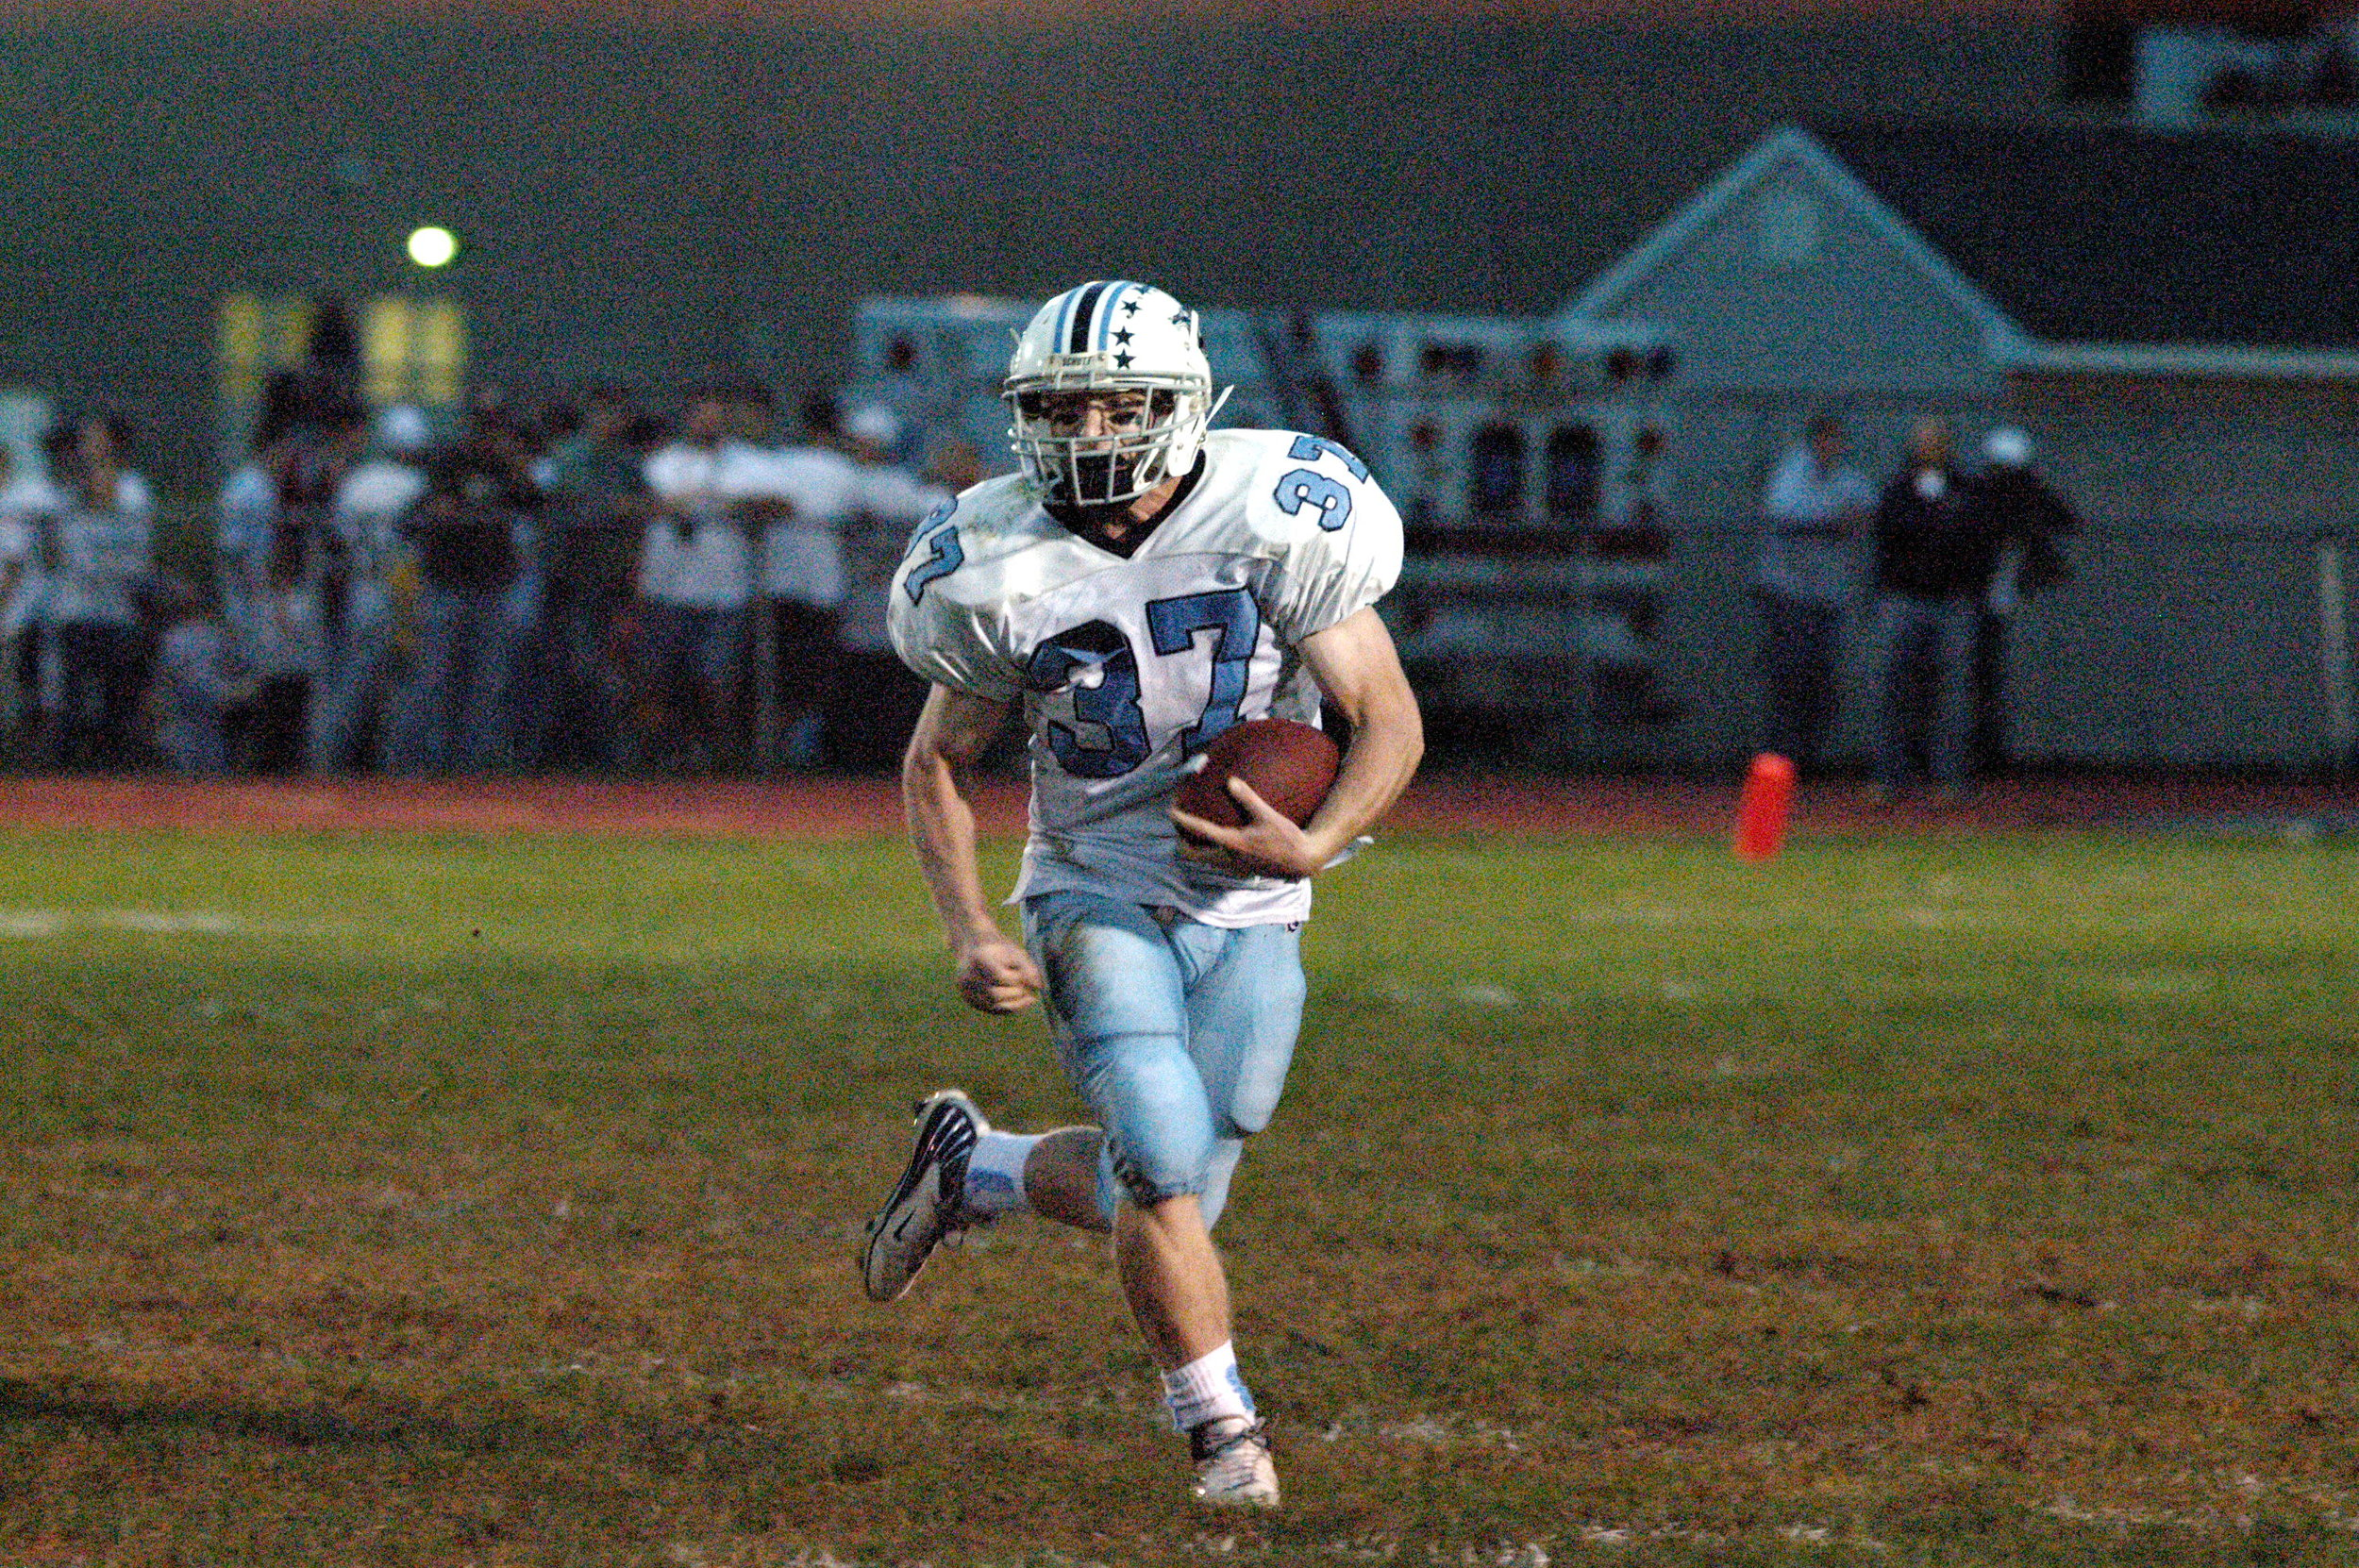 Although this may just look like a normal picture of me running the football on a Friday night in 2007, there is actually a lot more going on. Take a look at my right hand. My clenched fist is in preparation for attempting to run over the Roxbury High School outside linebacker. I succeeded, but at a cost. I separated my shoulder on this play, which led to hurting my opposite shoulder and then using my head as a weapon. I truely believe if I sat out for this shoulder injury, I never would have injured my brain to the extent I did.